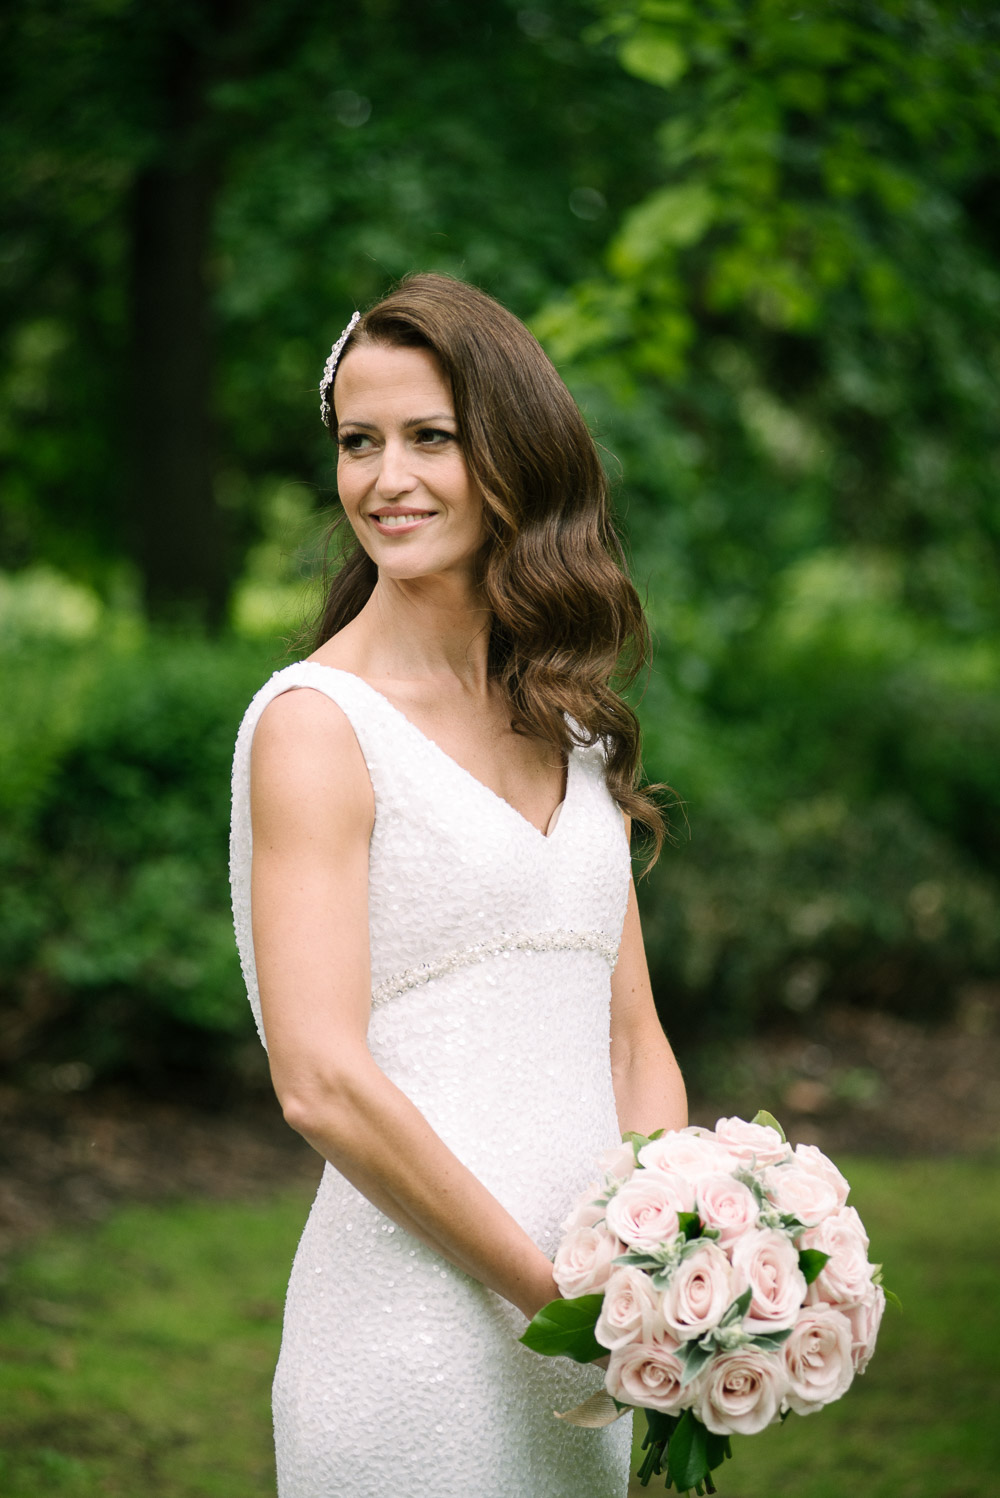 St. Stephen's Green Bridal Portrait